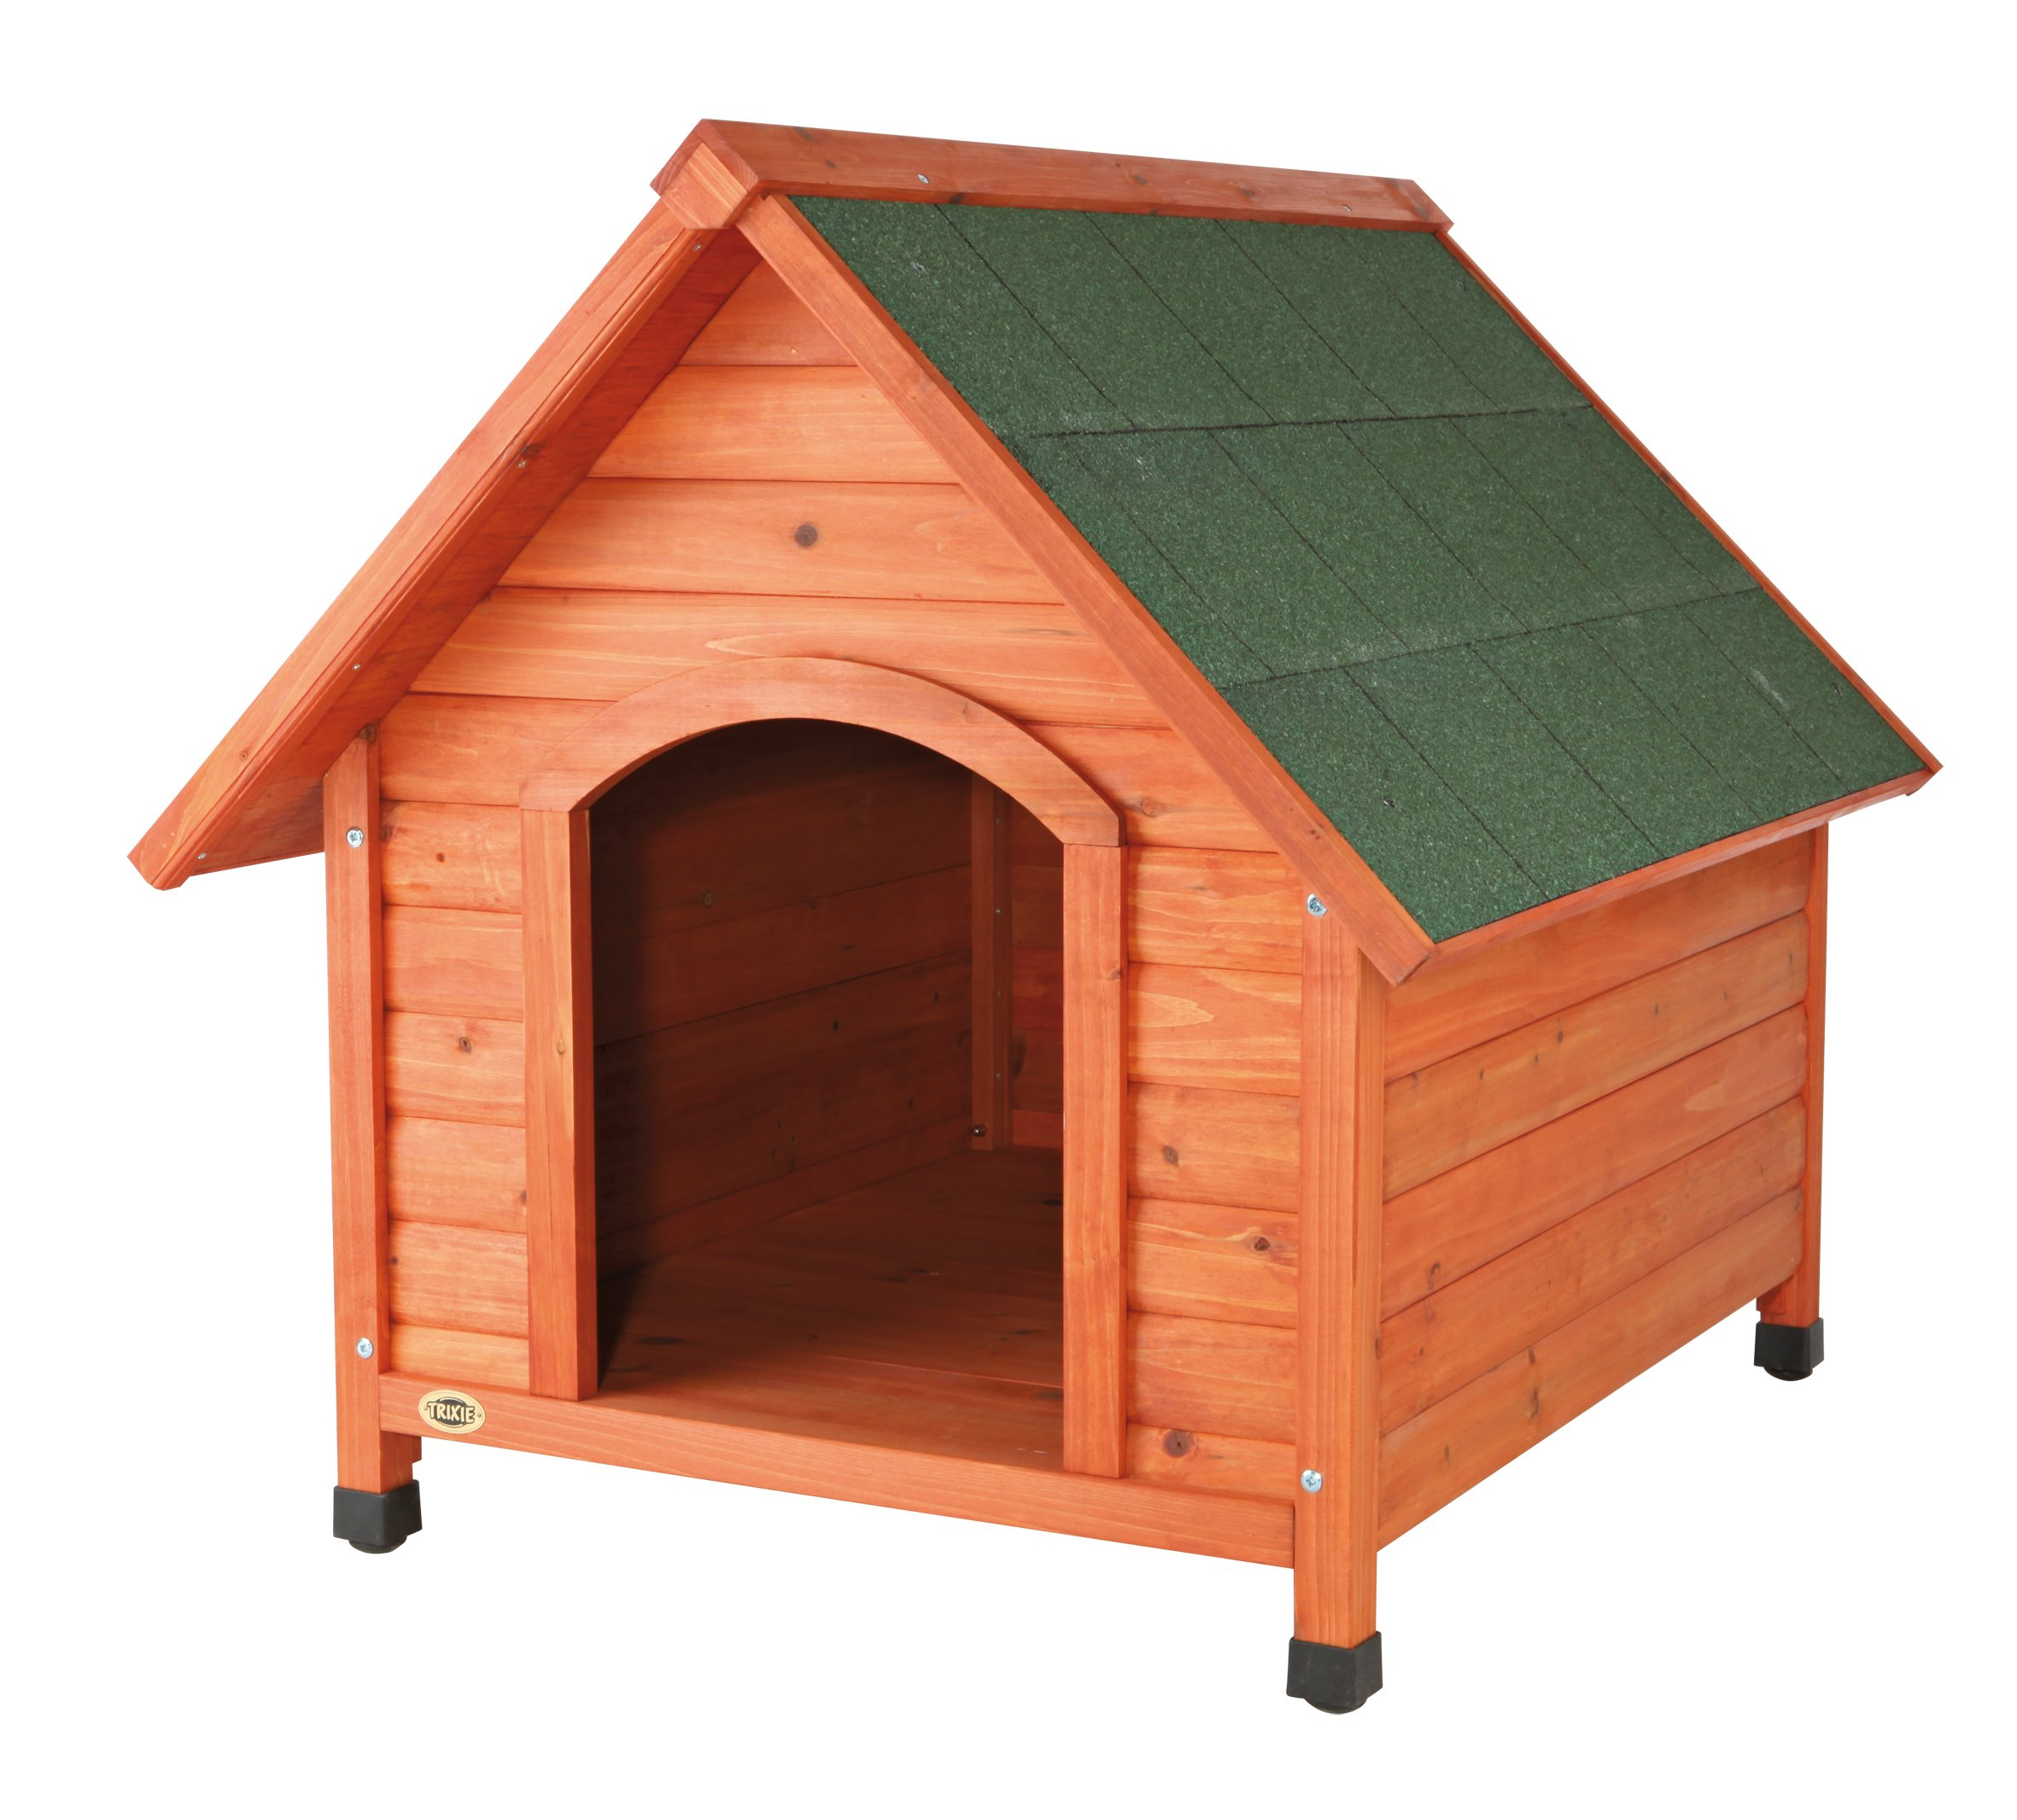 TRIXIE Pet Products Log Cabin Dog House, Large